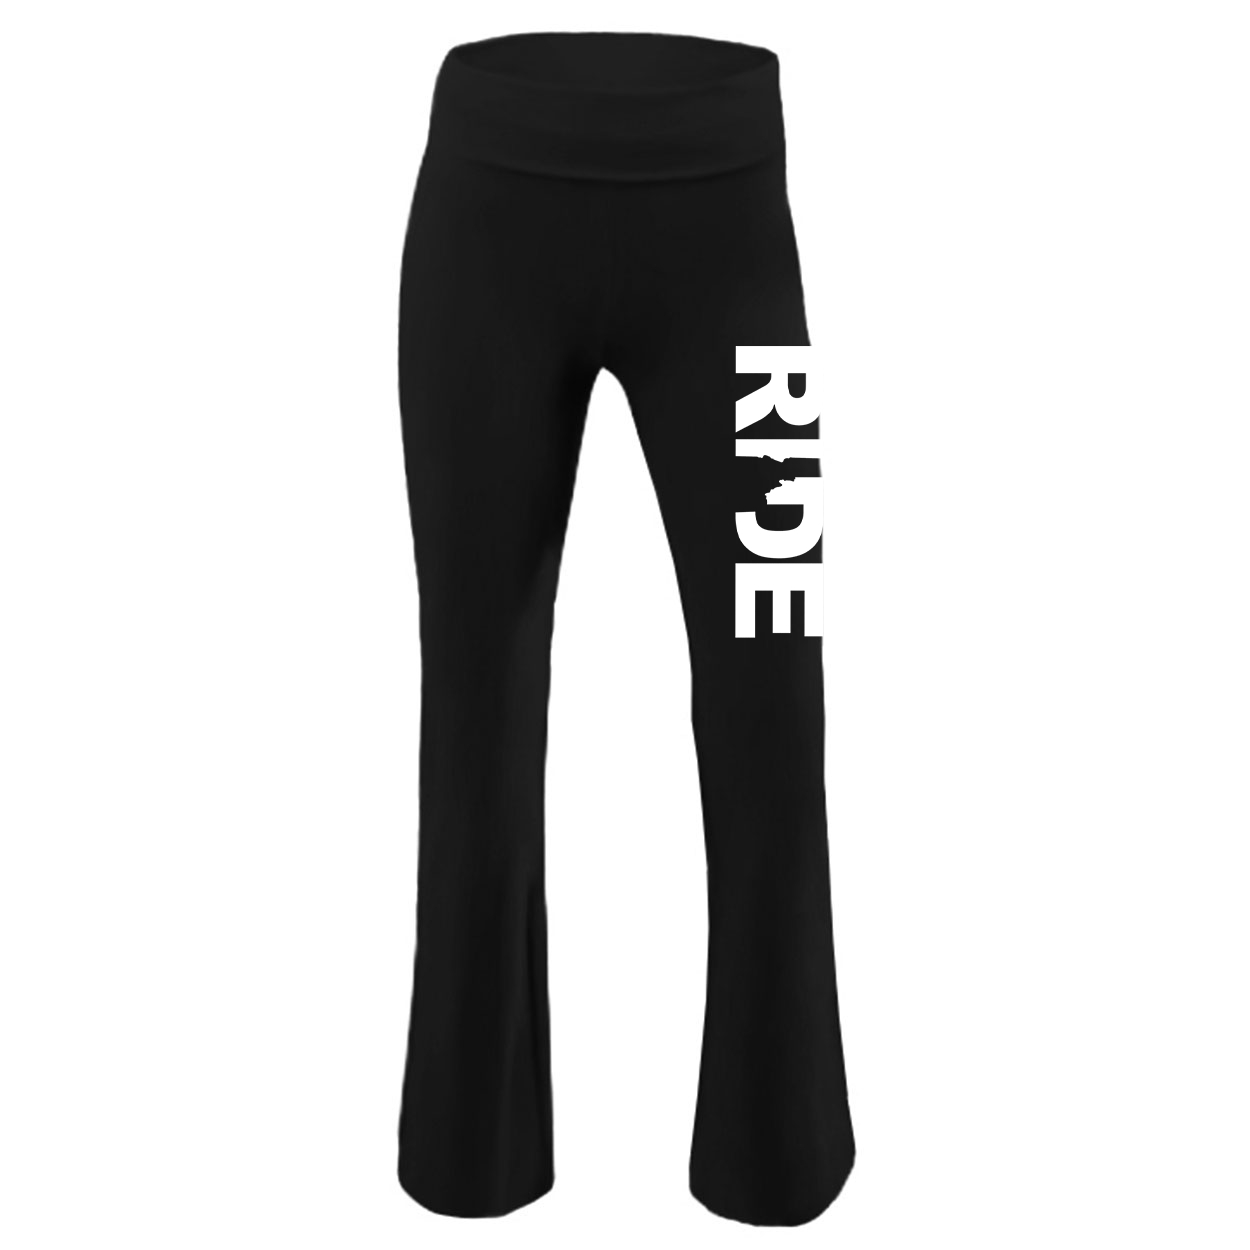 Ride Idaho Classic Youth Girls Yoga Pants Black (White Logo)